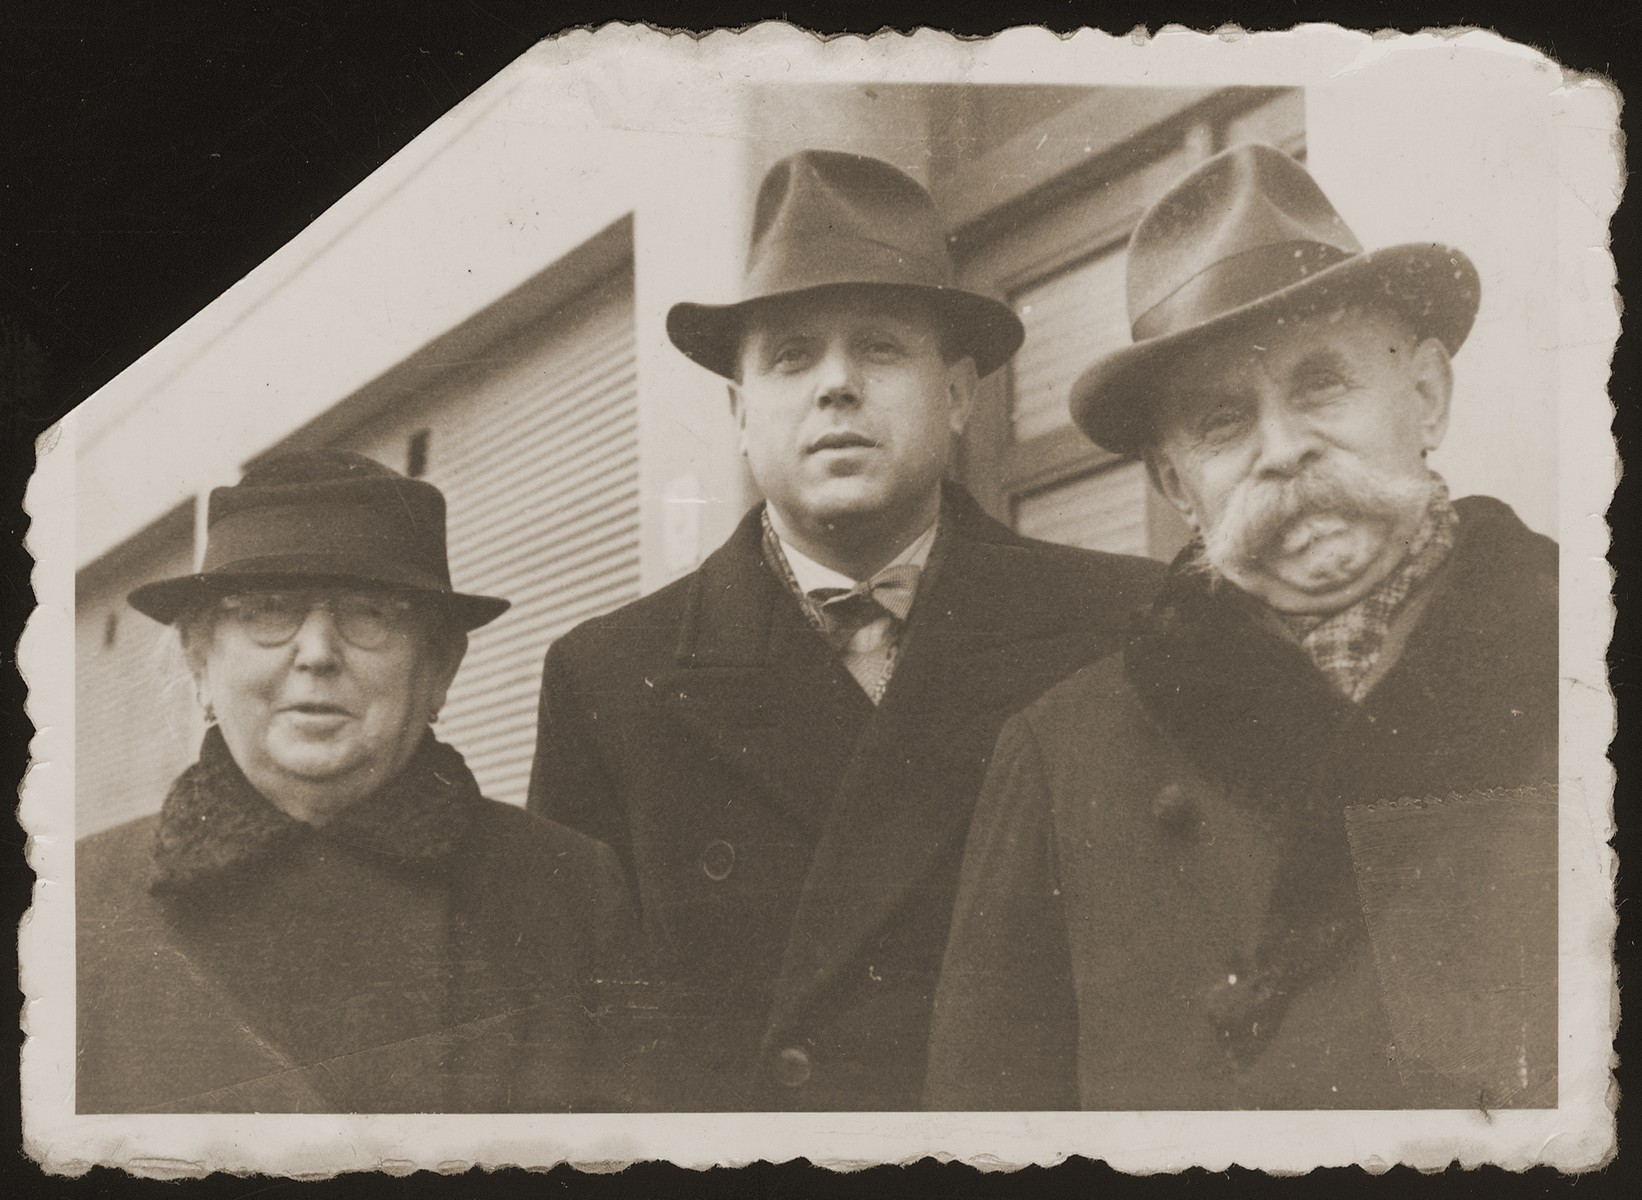 Julius and Fanny Goldstein pose outside with their son, Bohus.    Bohus and Wilma (Redlich) Goldstein had two children, Eva and Michael.  The family lived in Olomouc, where Bohus worked for the Prague autoworks.  All perished during the war.